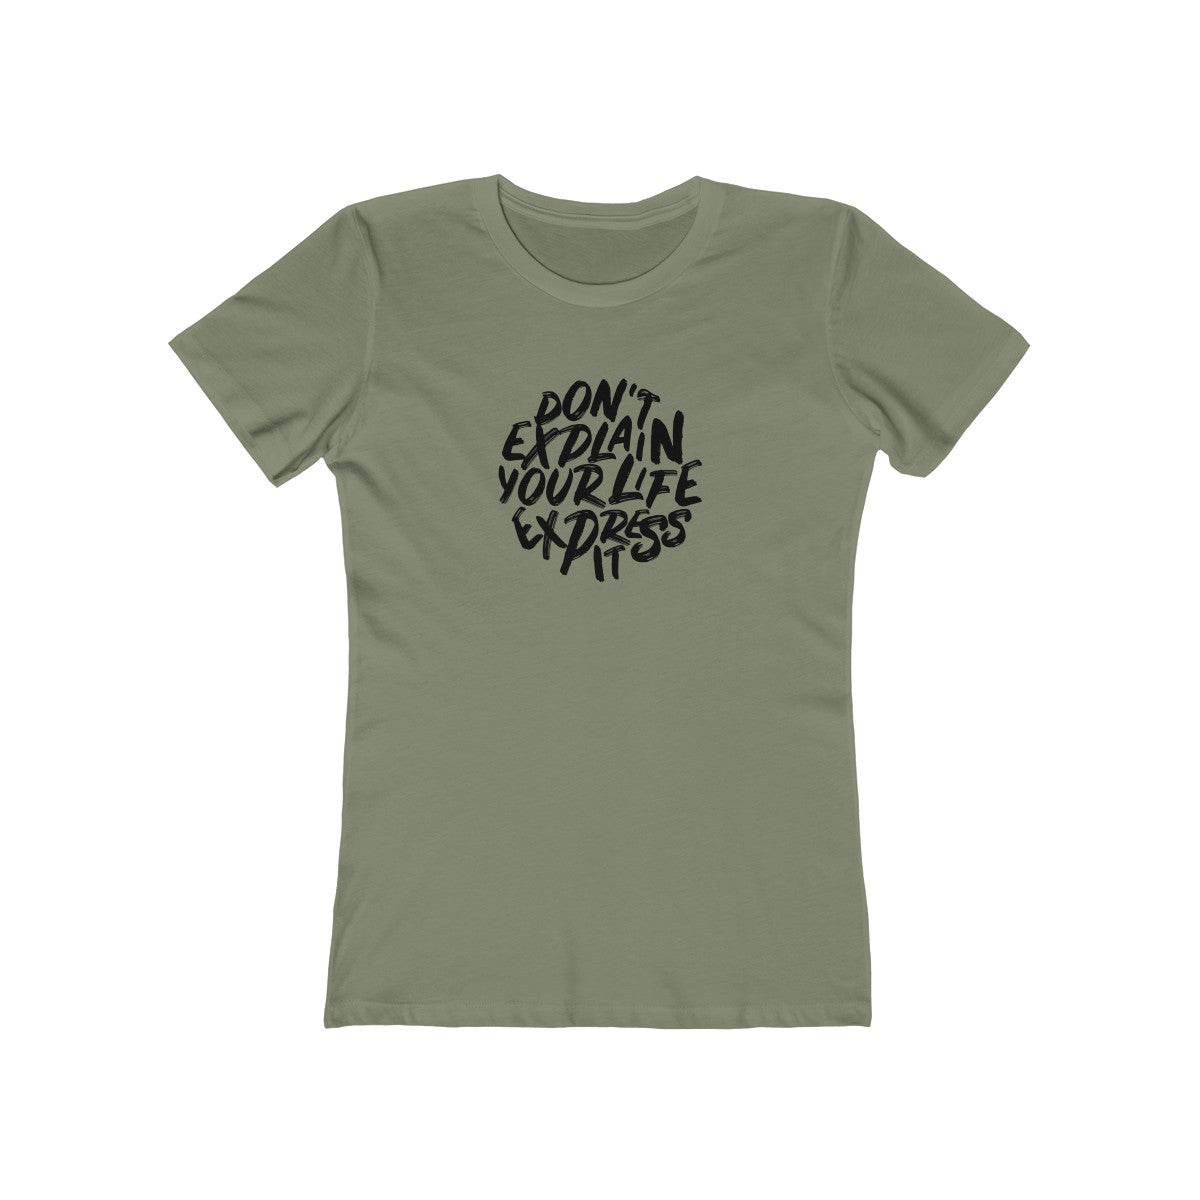 Dont Explain Your Life Express It Women's Tee